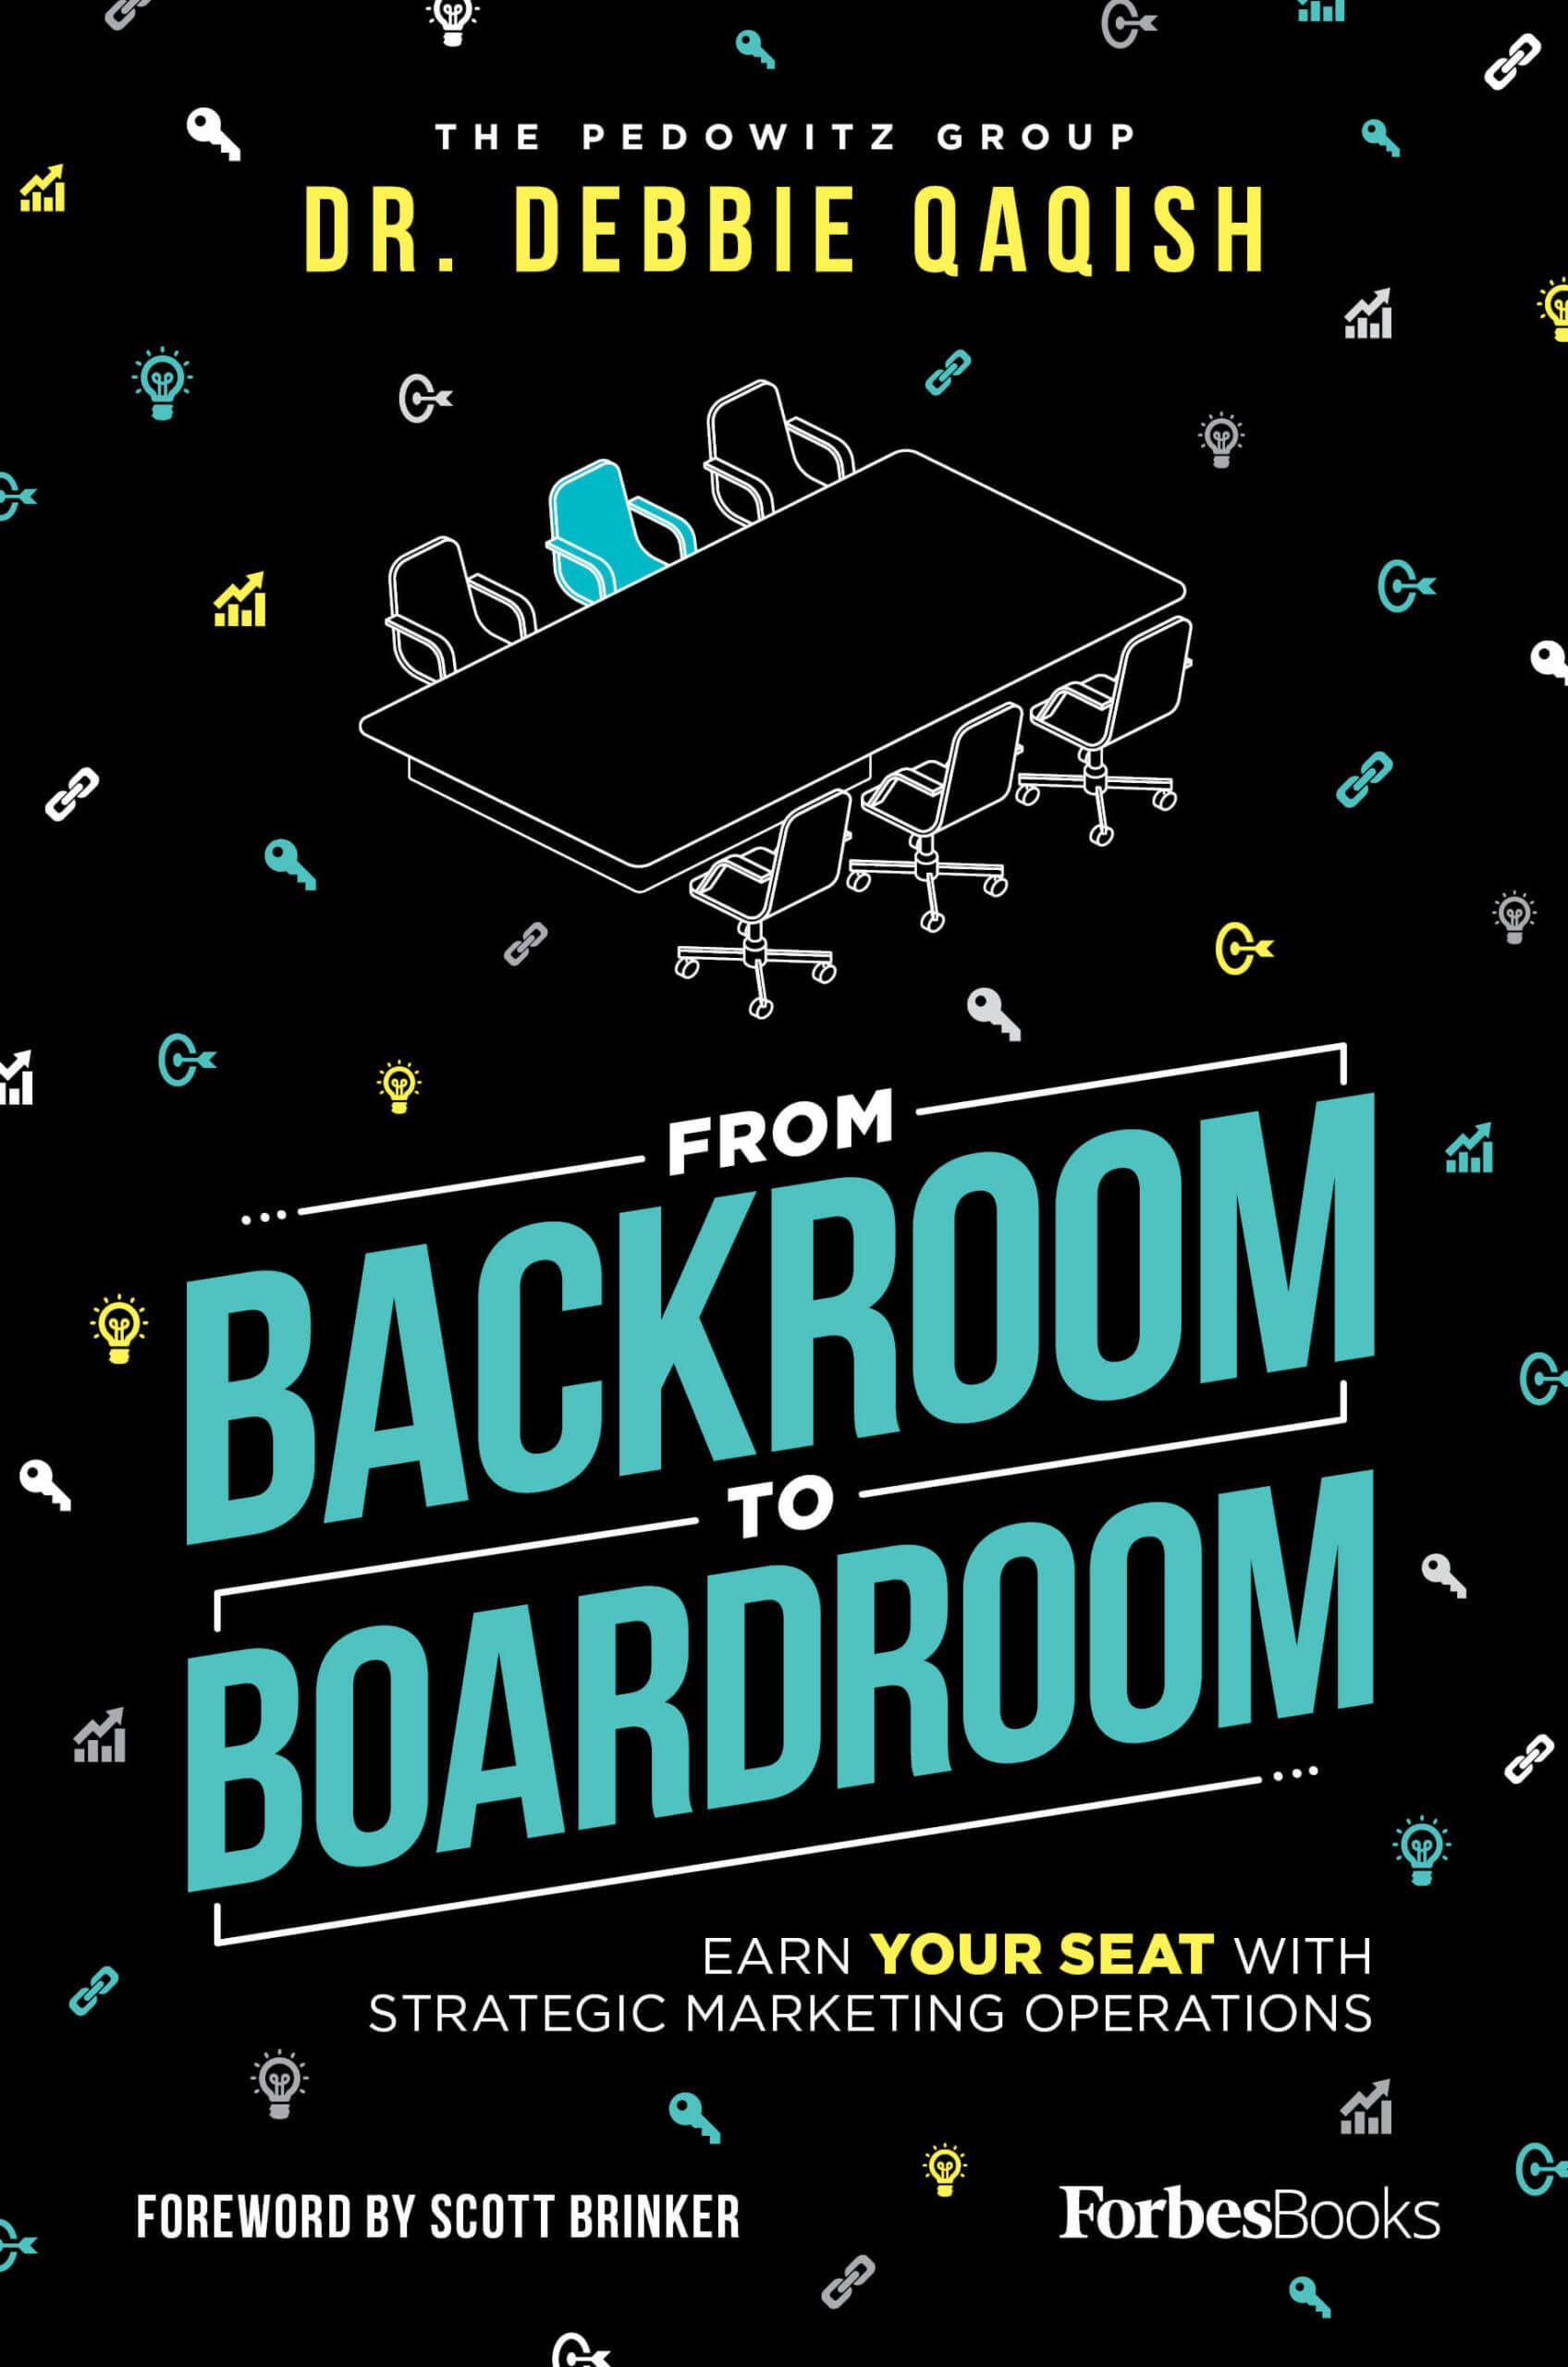 From Backroom To Boardroom is a must-have for marketing leaders!